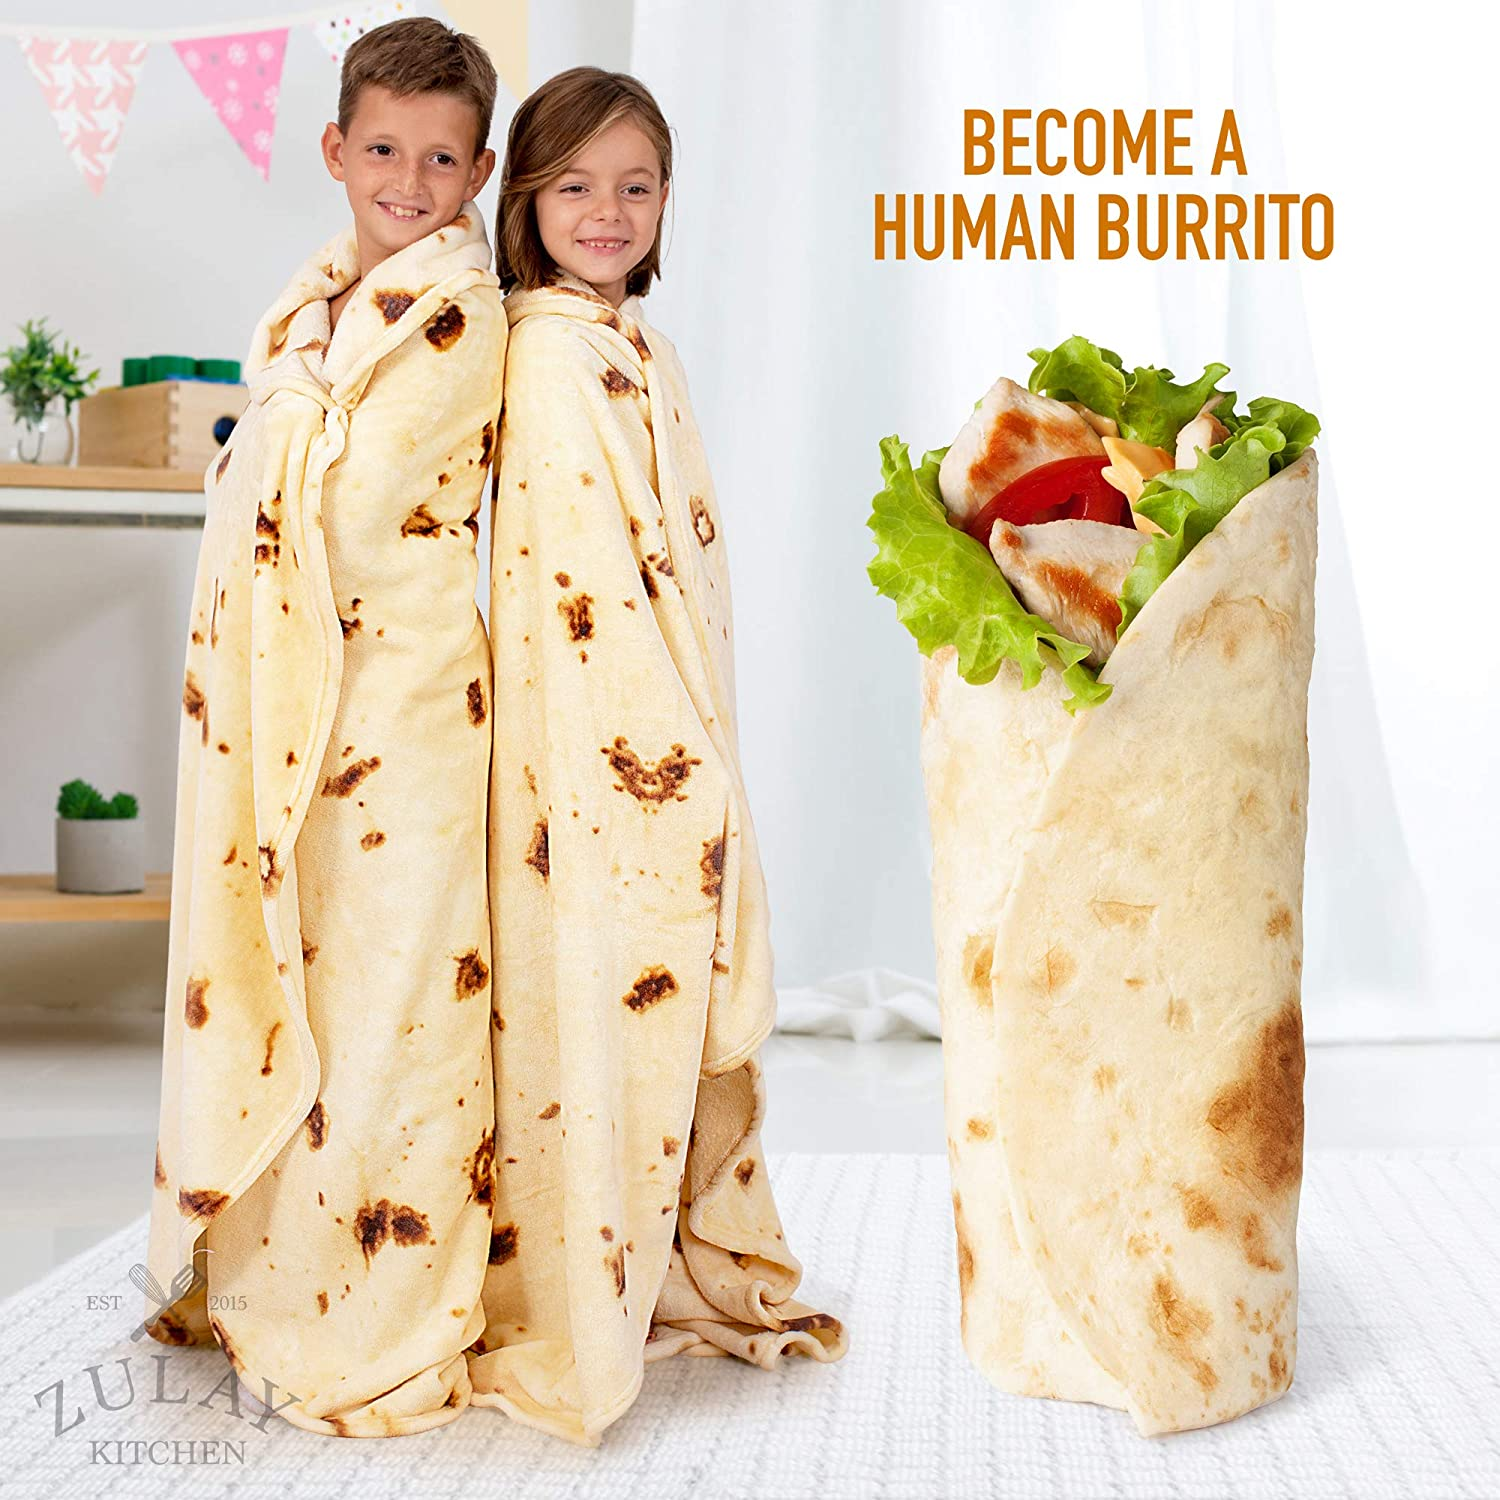 - Novelty Big Burrito Blanket for Adult and Kids Premium Soft Flannel Round Burrito Blanket for Indoors Outdoors Zulay Burrito Throw Blanket Flour Tortilla Design/  60inches Travel Home and More